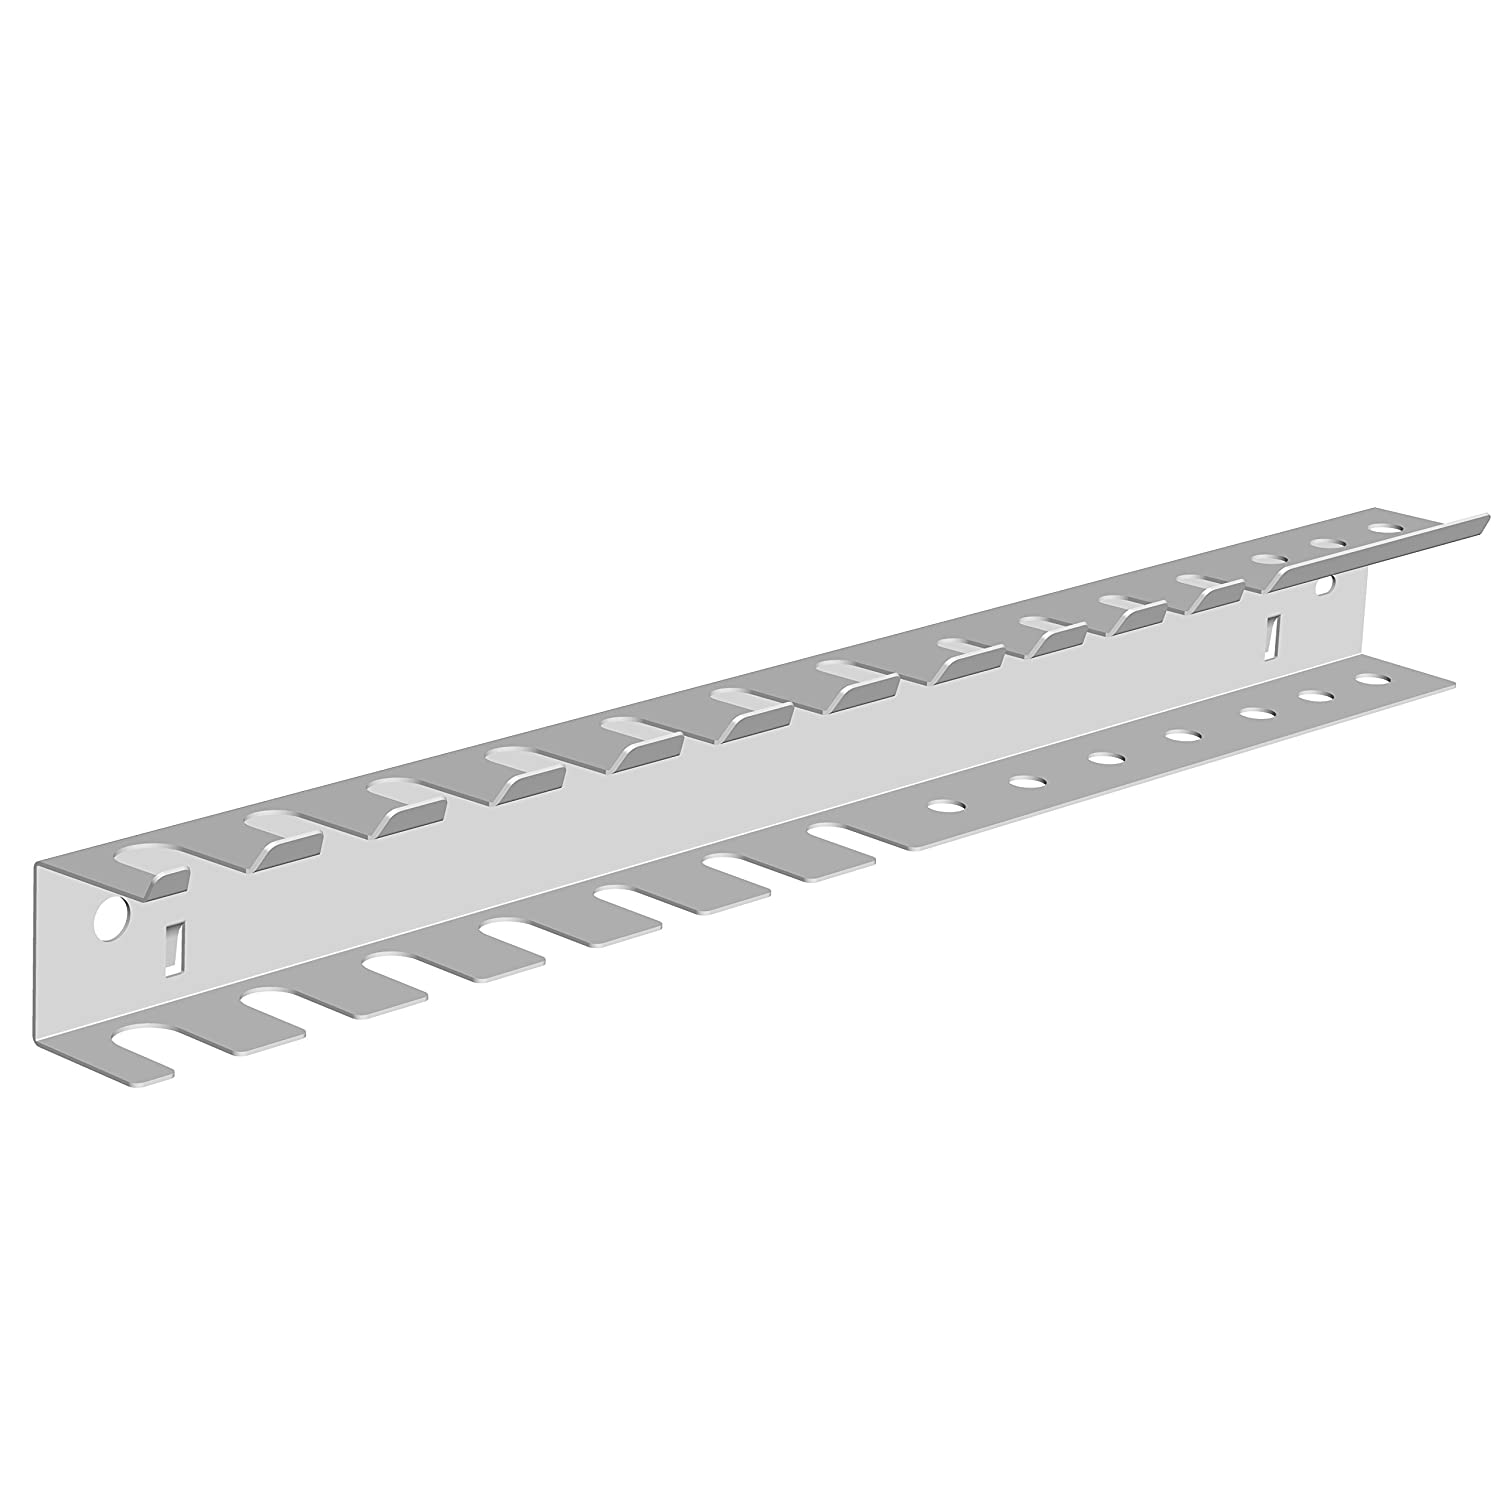 Element System for Tool Holder Strip Double Wall, Perforated tool display Lochplattenwand 11412-00002 White DIY Element System